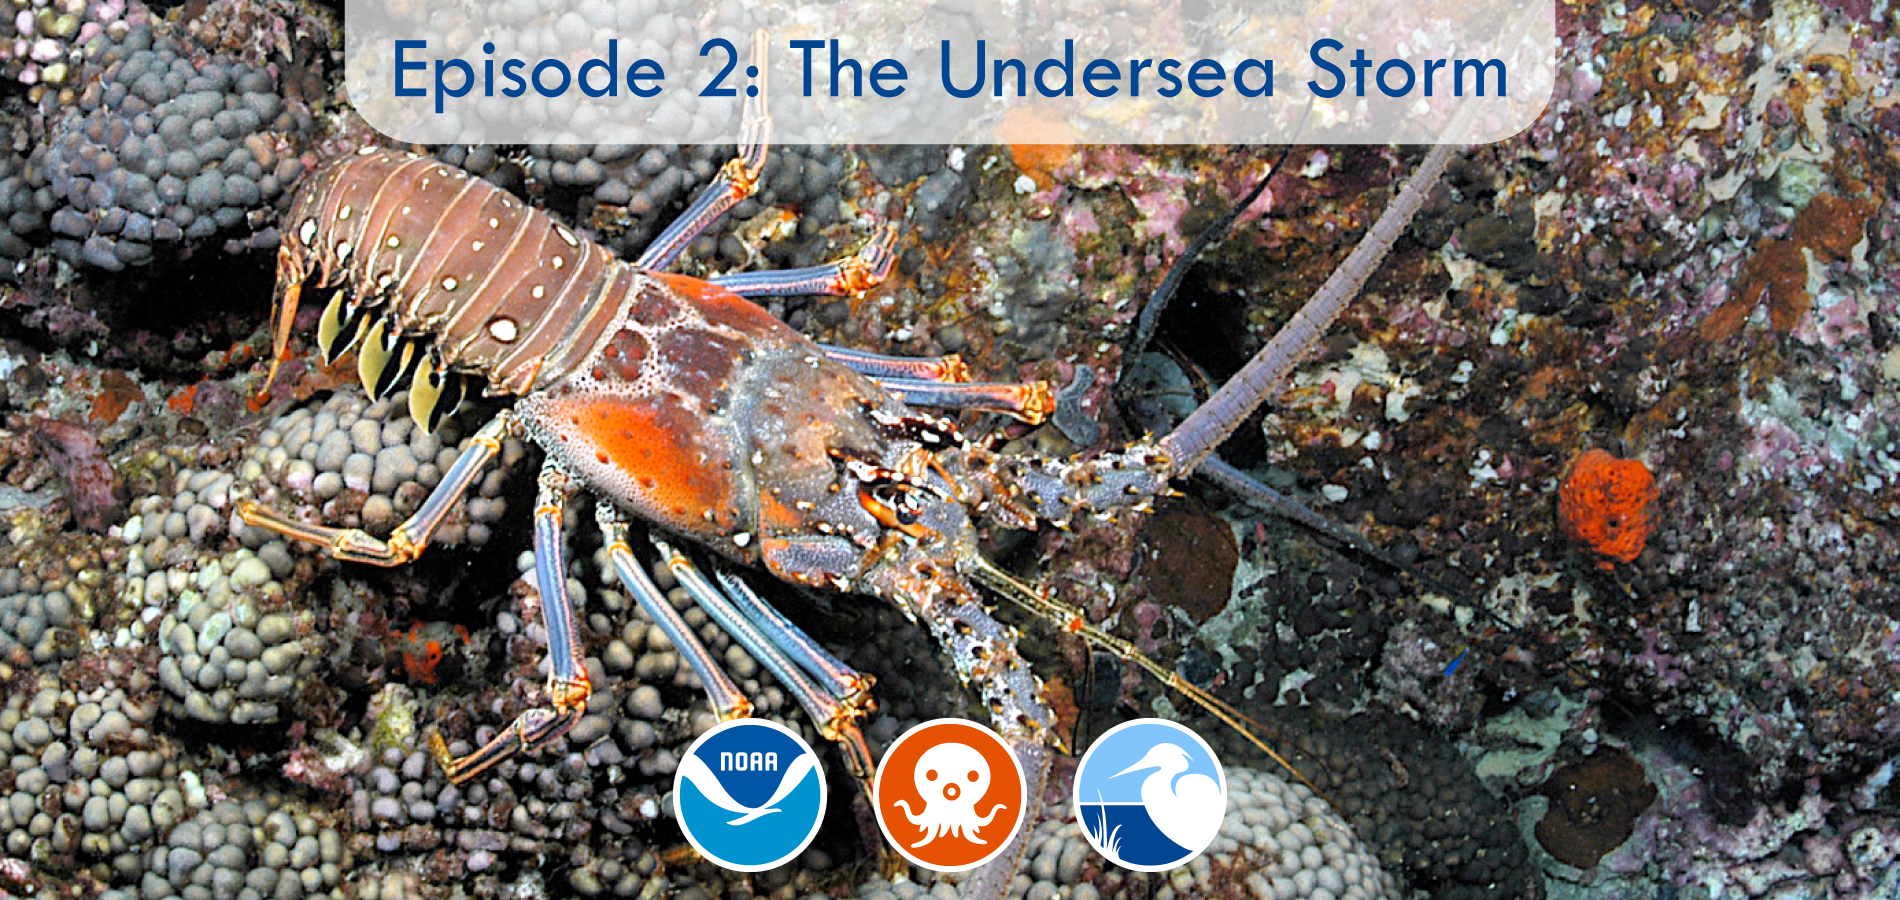 Episode 2: The Undersea Storm Learn from The Florida Aquarium about lobsters and how they fare during underwater stormslike the one featured in this episode ofThe Octonauts.